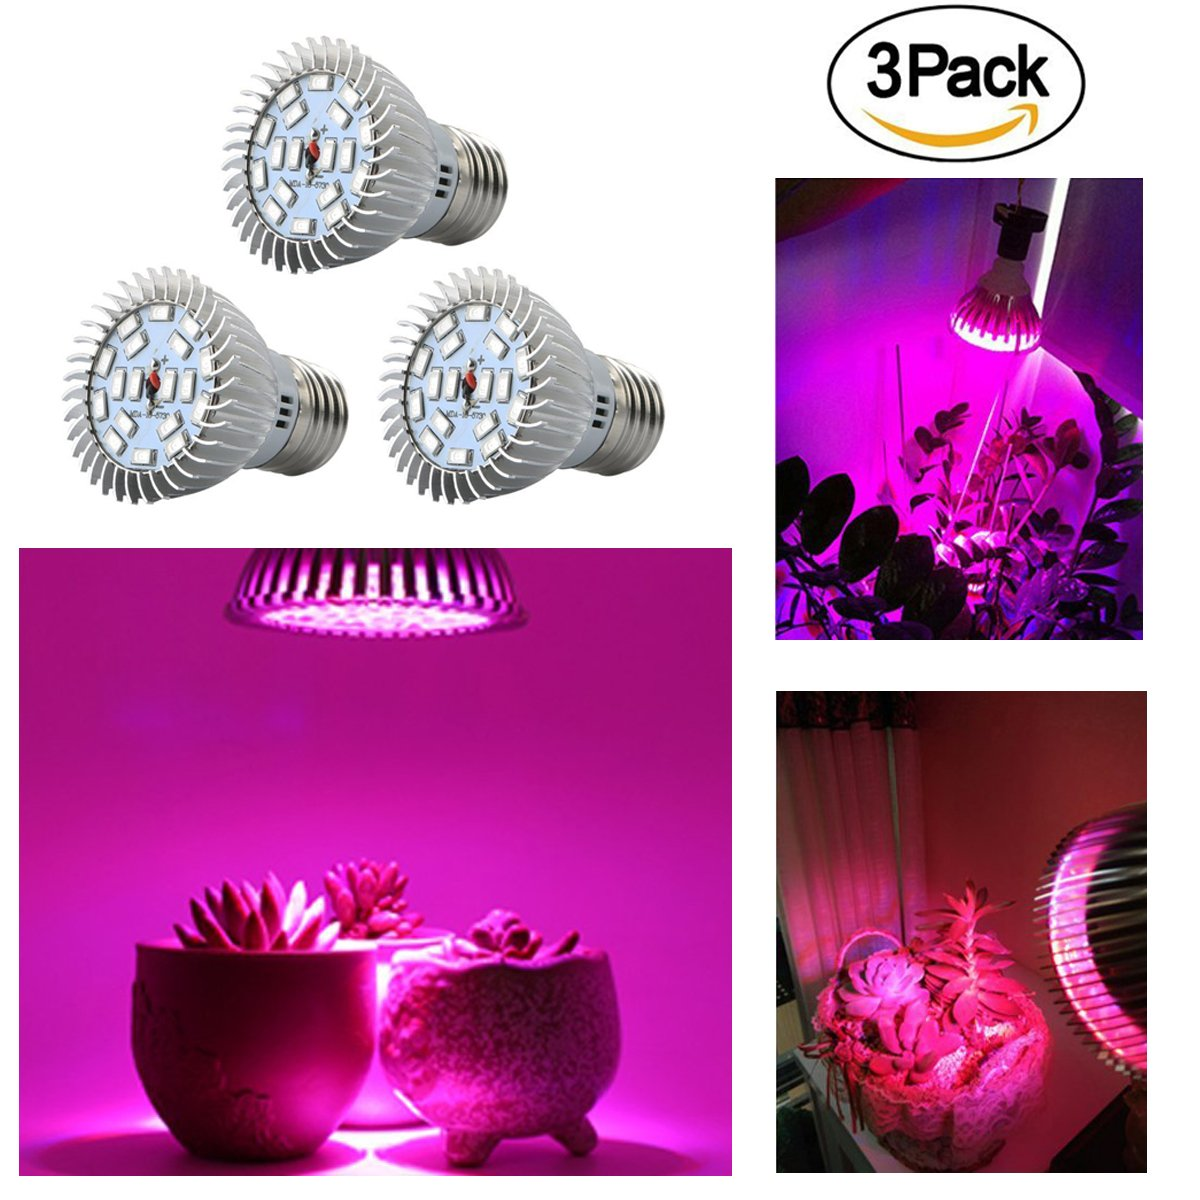 E27 18-LEDs Light Kit of 3 Packs, Enjoydeal LED Grow Lights 8W Full Spectrum Plant Landscape Light for Indoor Outdoor Greenhouse Garden